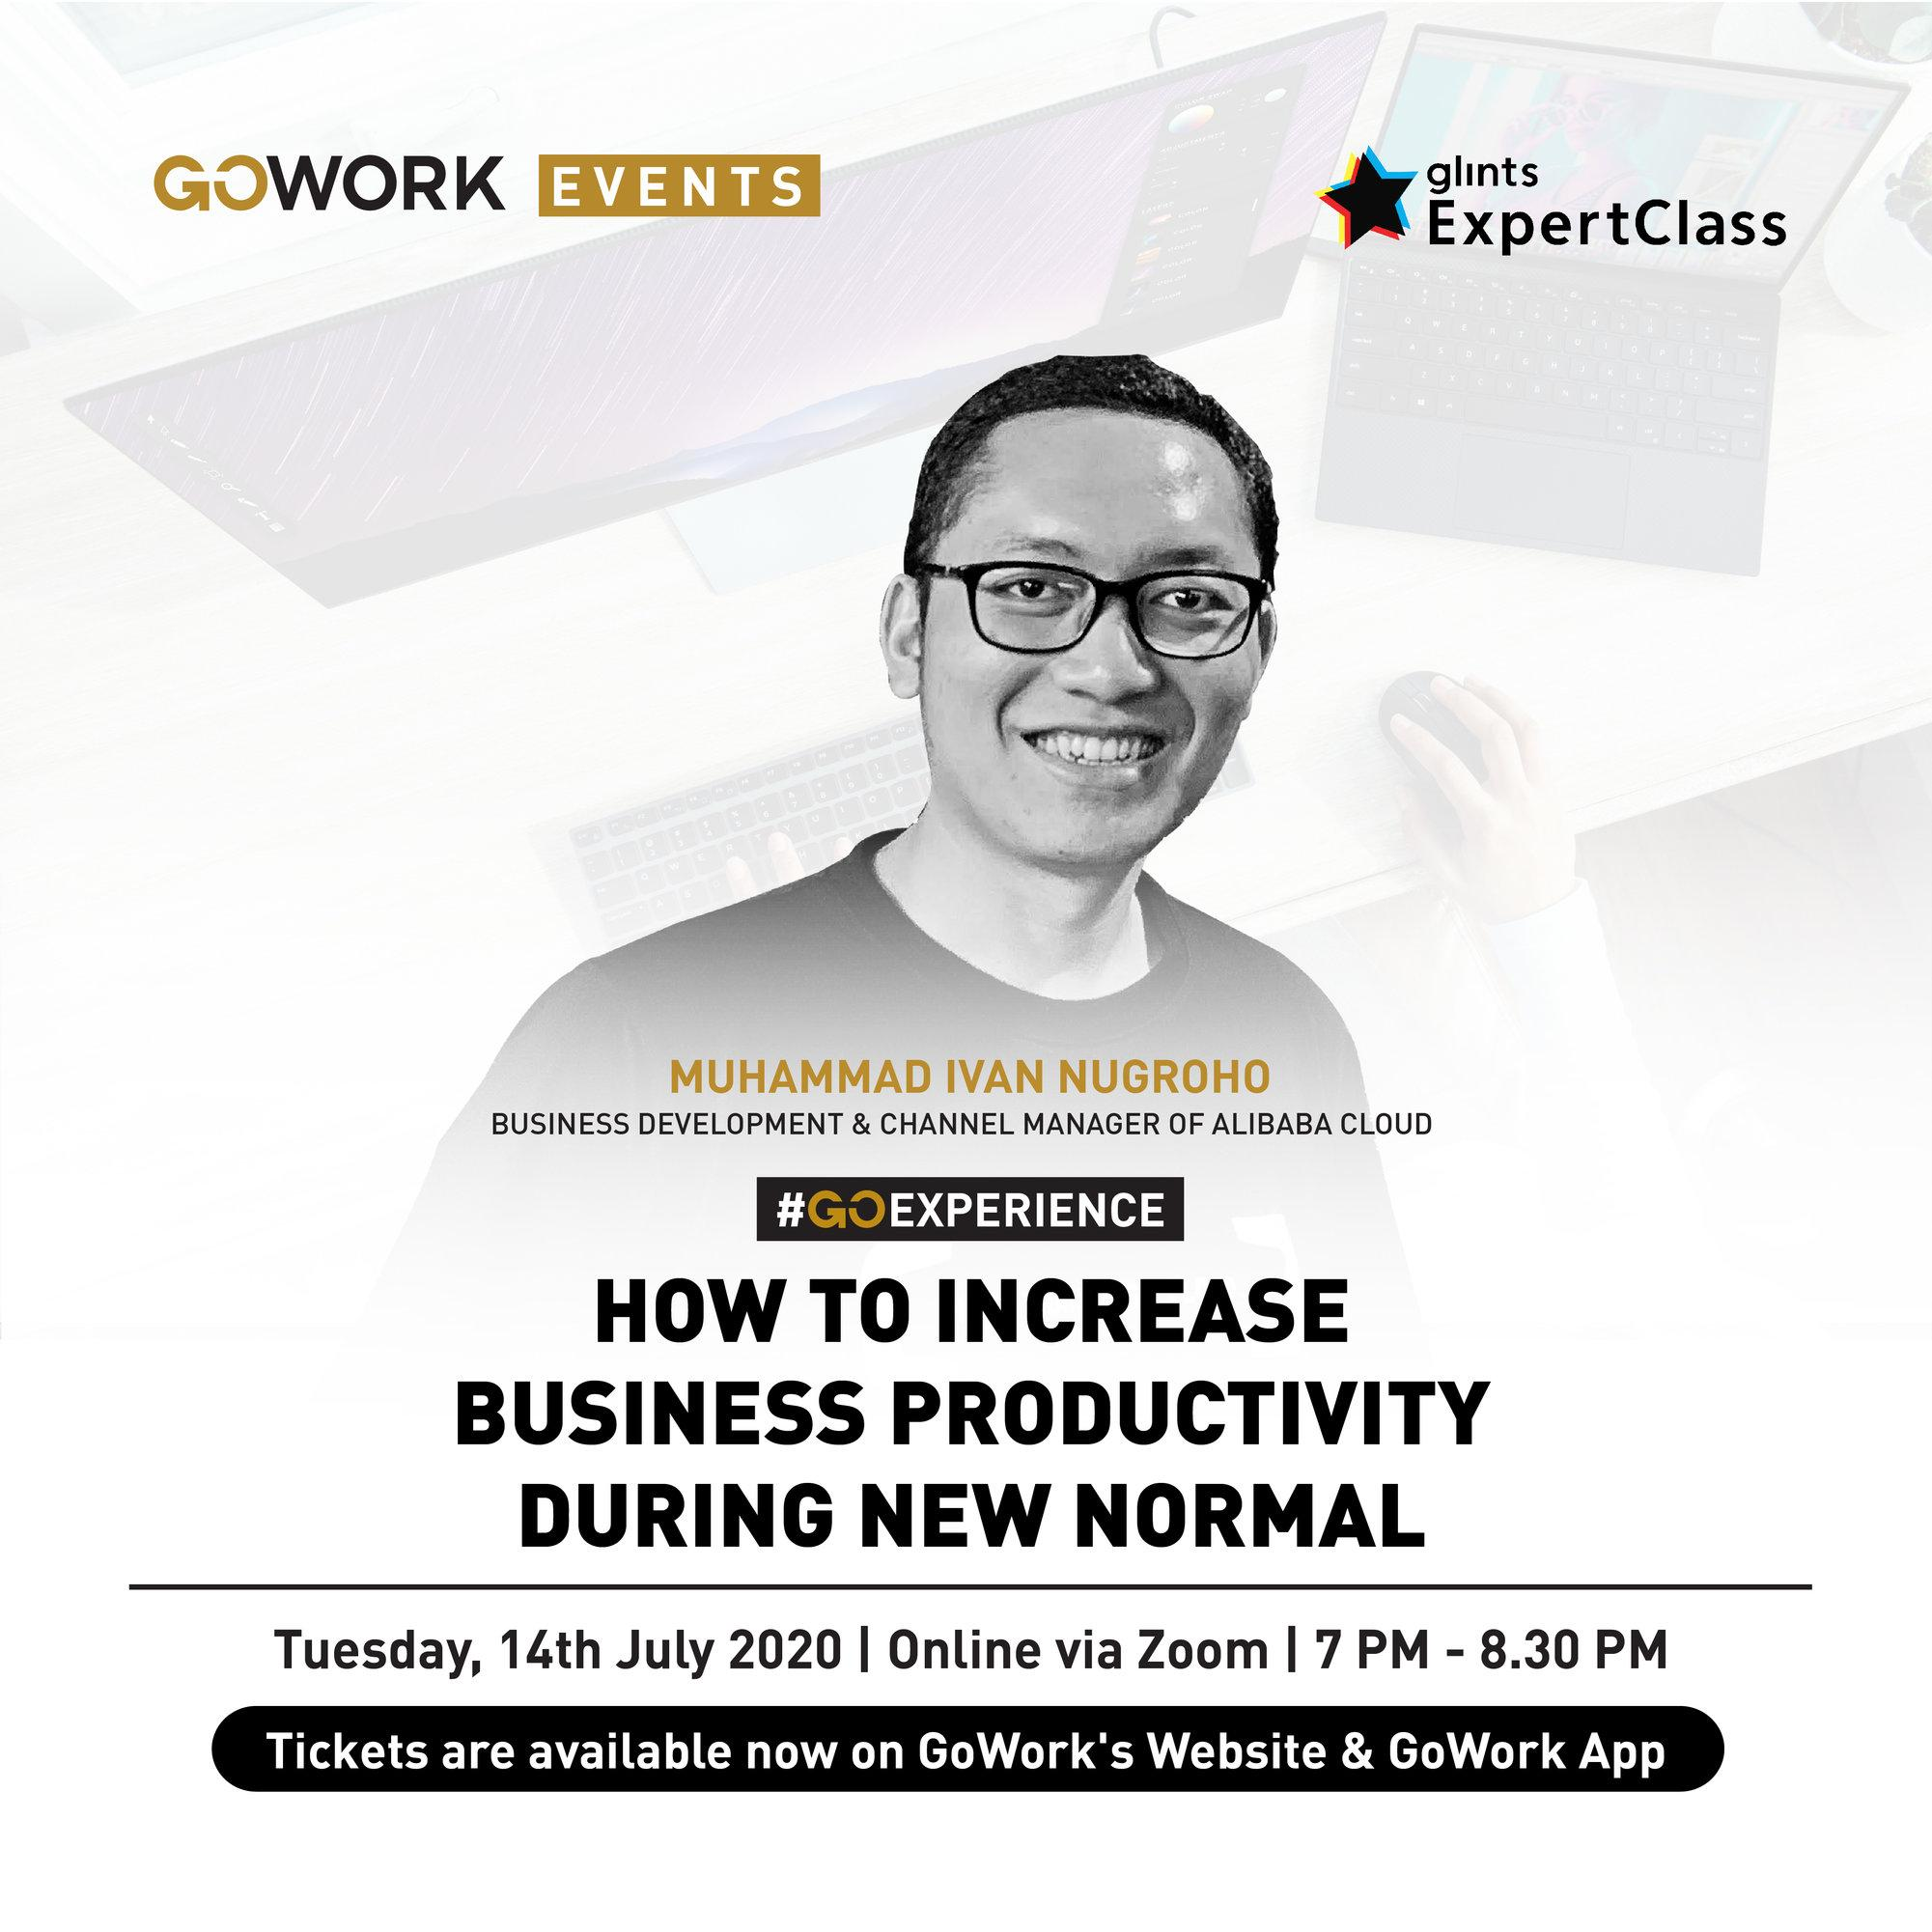 How To Increase Business Productivity During New Normal